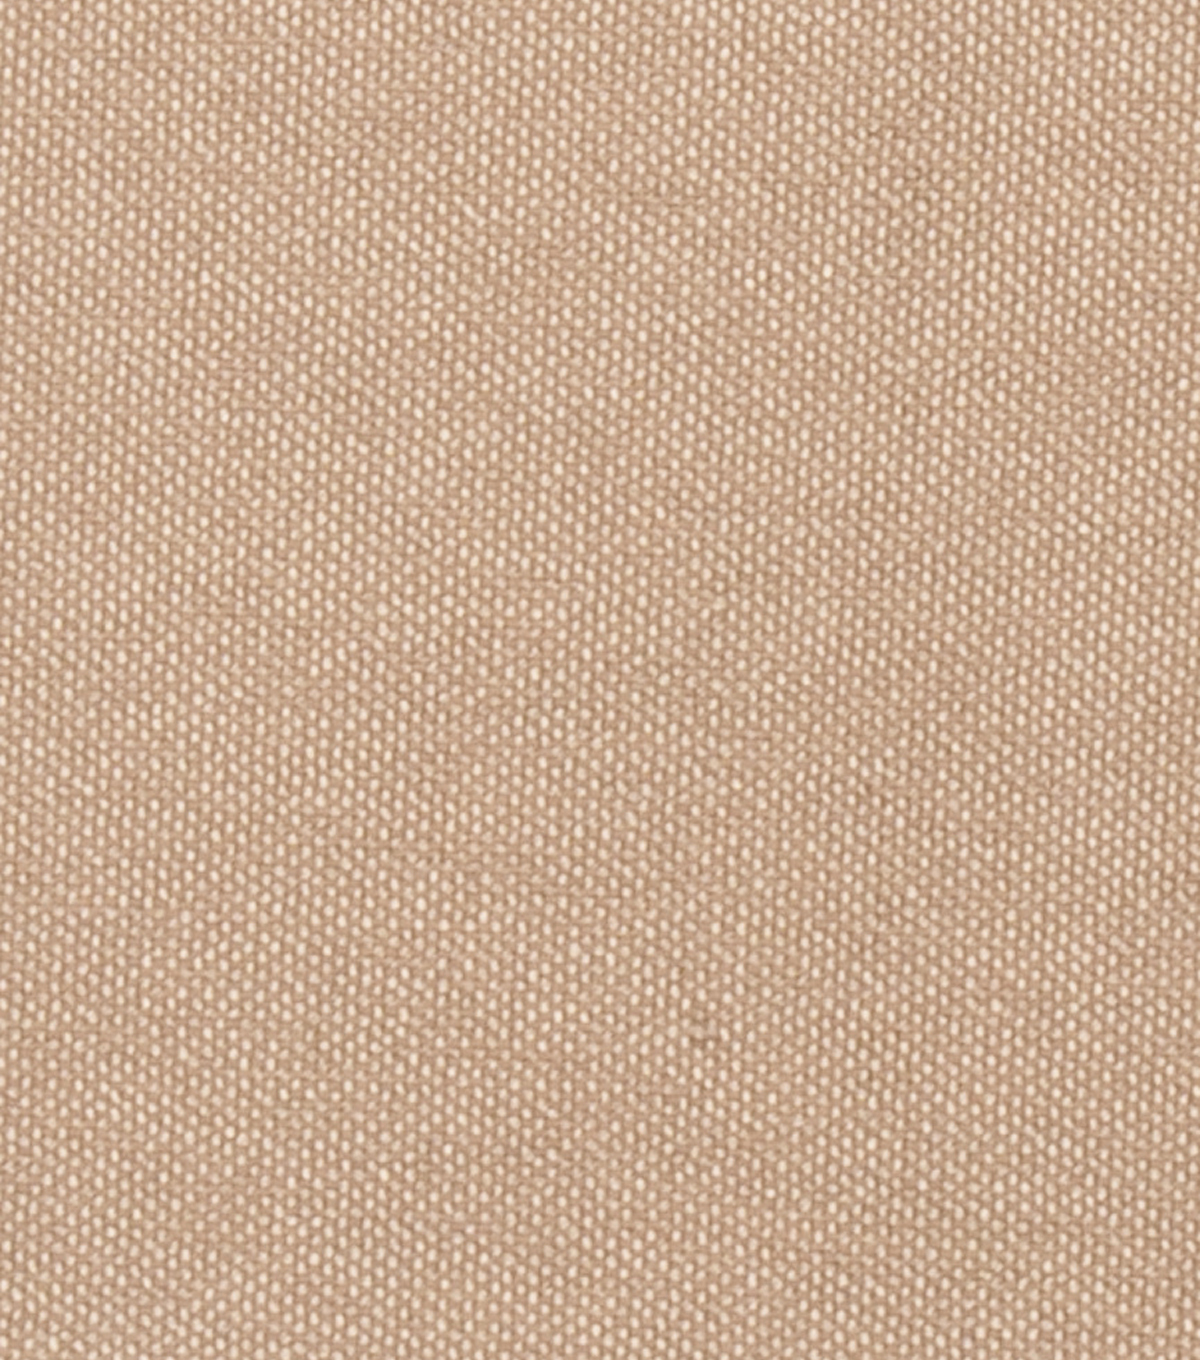 "Home Decor 8""x8"" Fabric Swatch-Jaclyn Smith Cobblestone Boucle Earth"